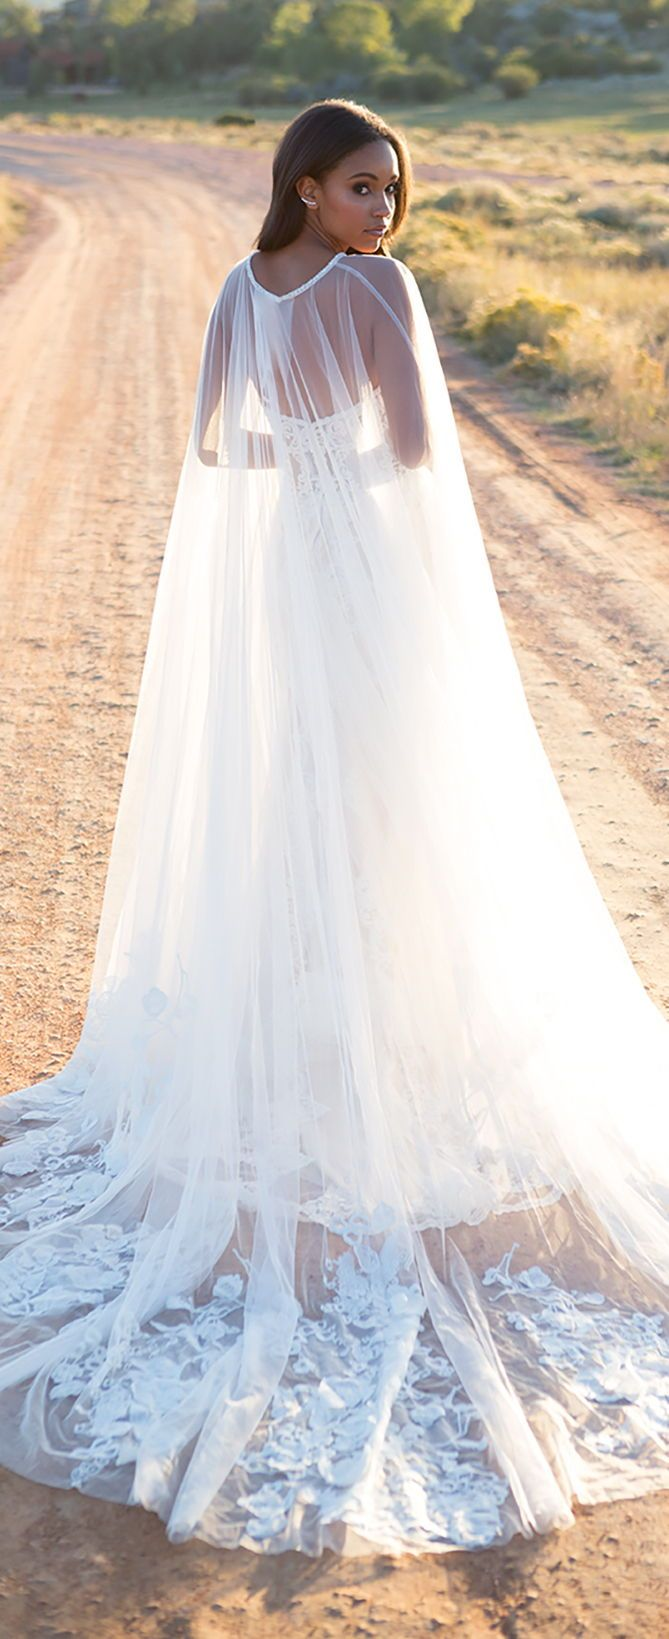 Wedding dress with cape by Allure Bridals #ad @allurebridals ...